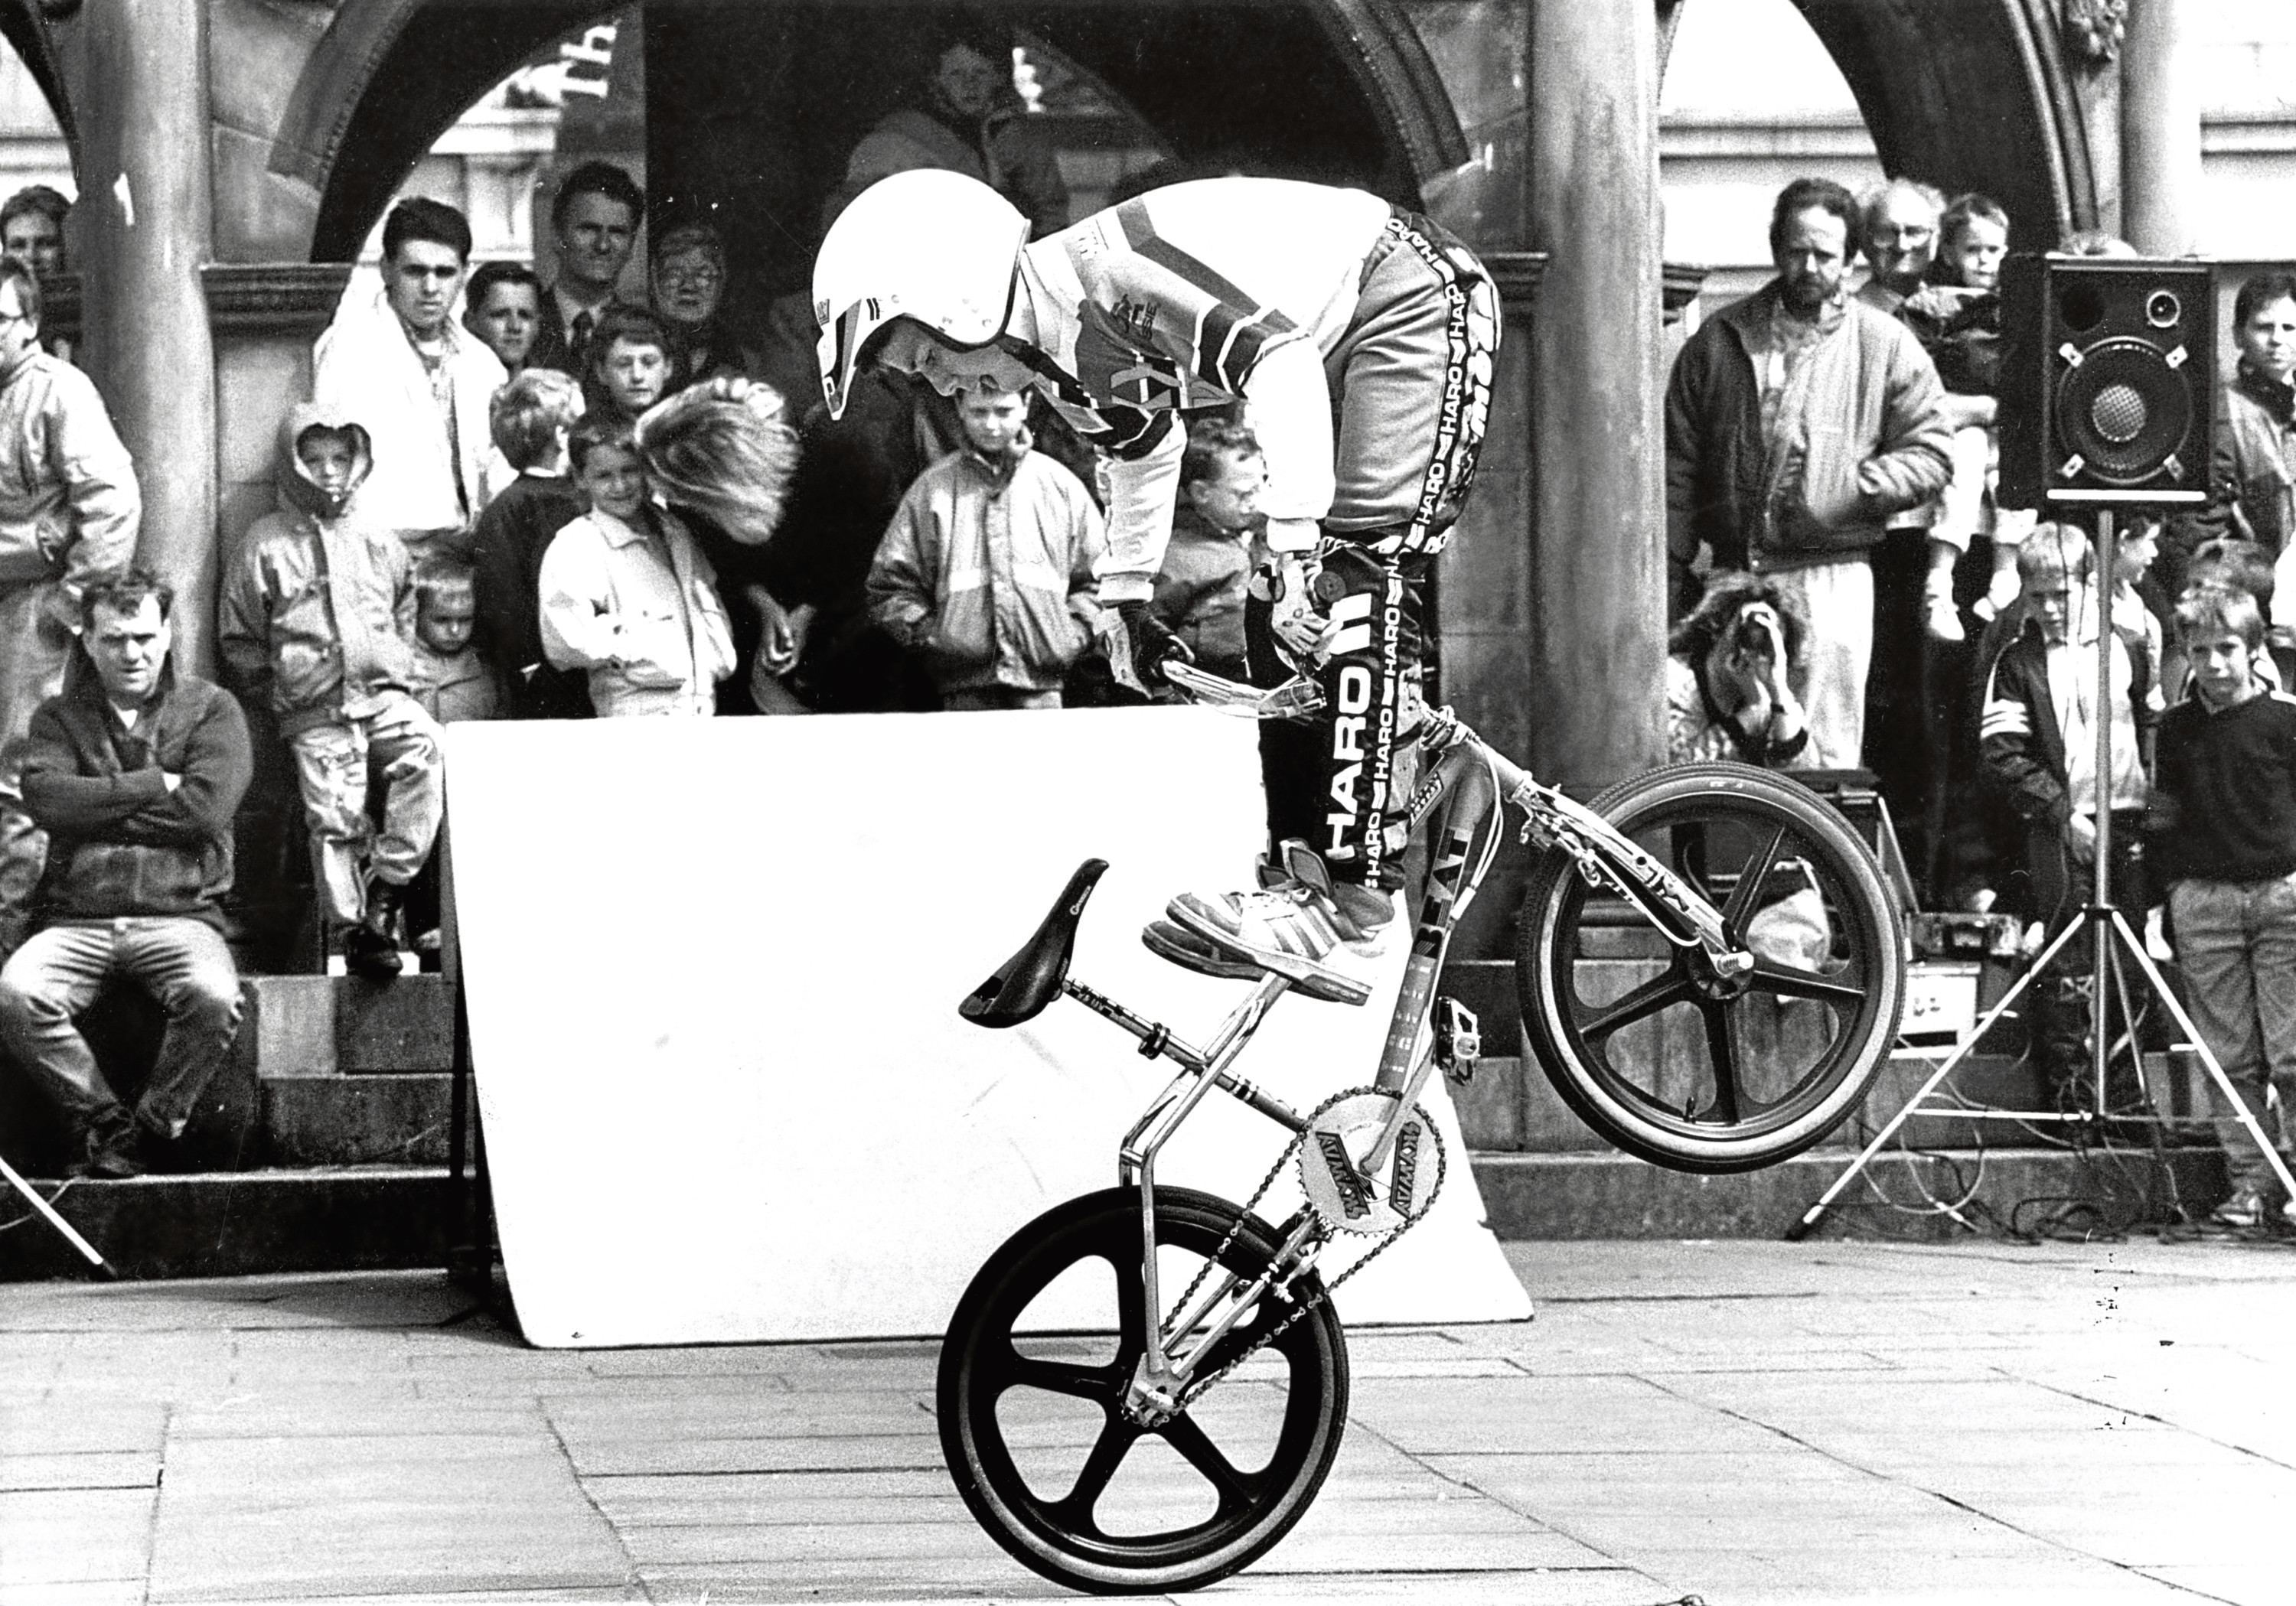 Aberdeen's Castlegate played host to some exciting entertainment, shown here is 10-year-old Brian Henderson a member of the Skyway BMX World Championship Team, going through his paces.